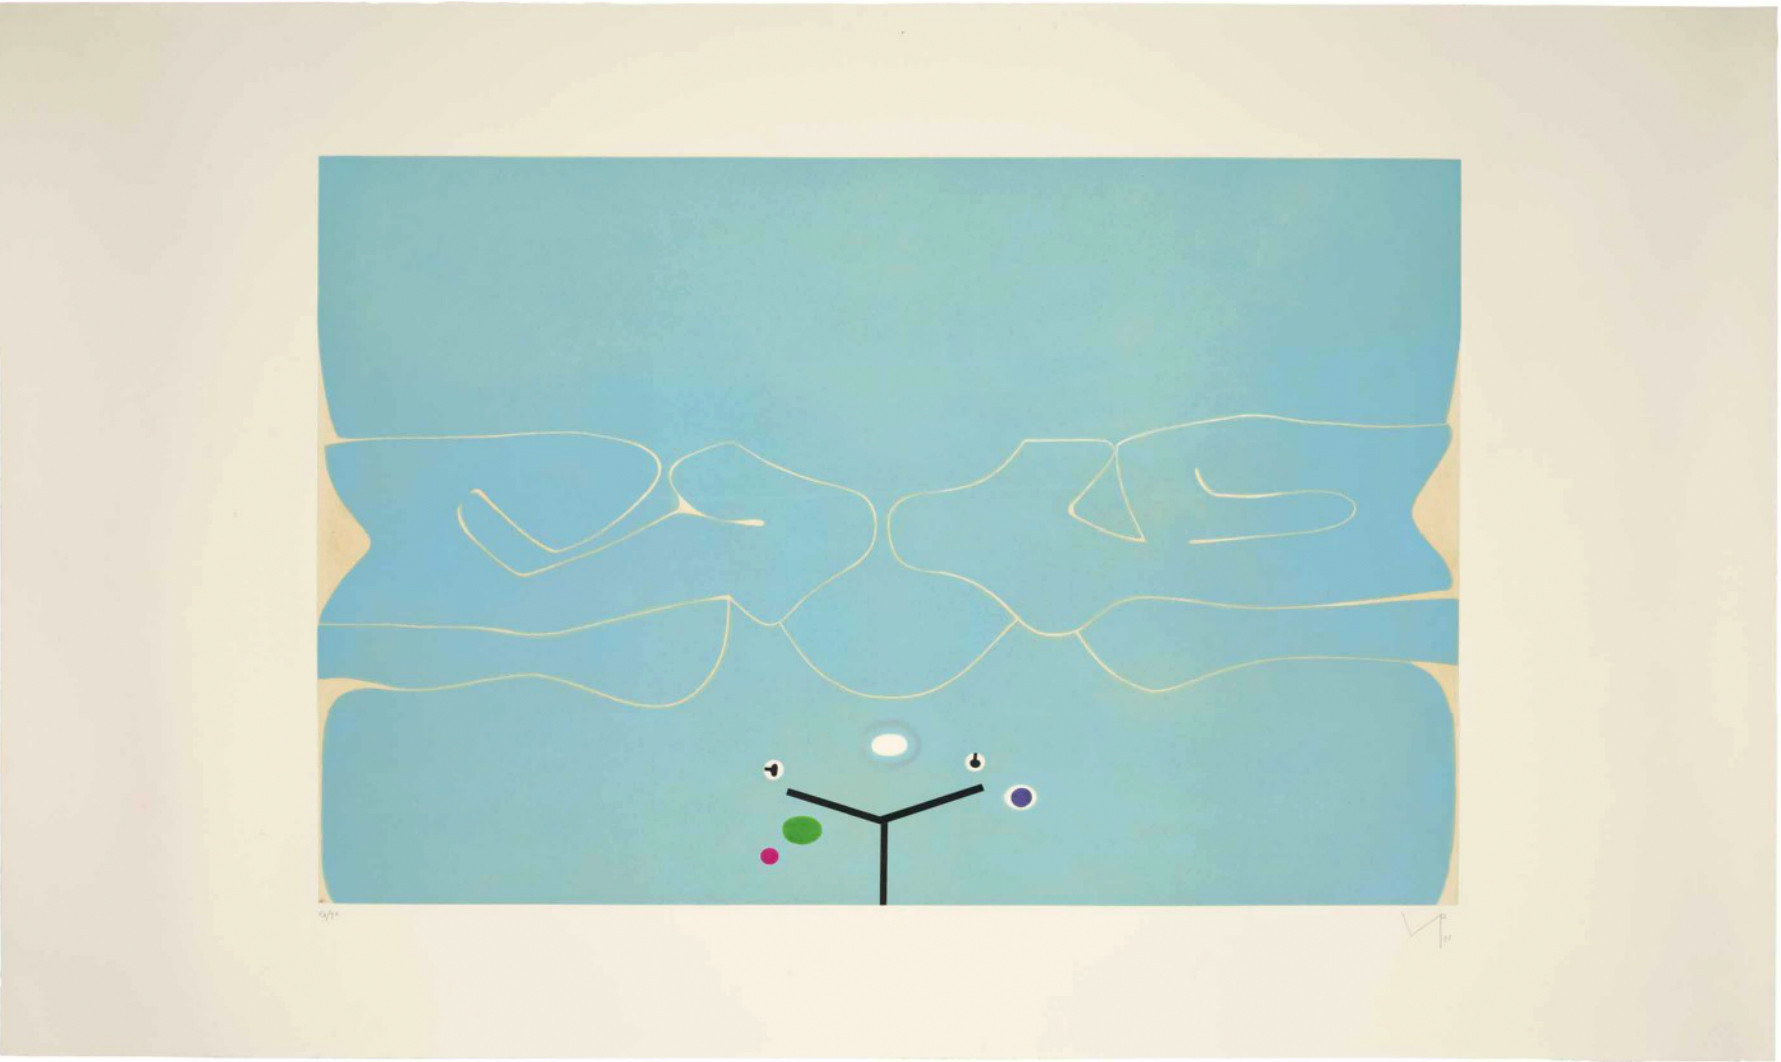 "<span class=""link fancybox-details-link""><a href=""/artists/84-victor-pasmore-ch-cbe/works/3804-victor-pasmore-ch-cbe-soft-is-the-sound-of-the-ocean-1986/"">View Detail Page</a></span><div class=""artist""><strong>Victor Pasmore CH CBE</strong></div> 1908–1998 <div class=""title""><em>Soft is the Sound of the Ocean</em>, 1986</div> <div class=""signed_and_dated"">signed and dated in pencil</div> <div class=""medium"">etching and aquatint in colours, on Fabriano wove paper</div> <div class=""dimensions"">plate size: 72 x 108 cm<br /> sheet size: 100 x 167 cm</div> <div class=""edition_details"">63/90 aside from 15 Artist's Proofs</div><div class=""copyright_line"">© The Estate of Victor Pasmore</div>"